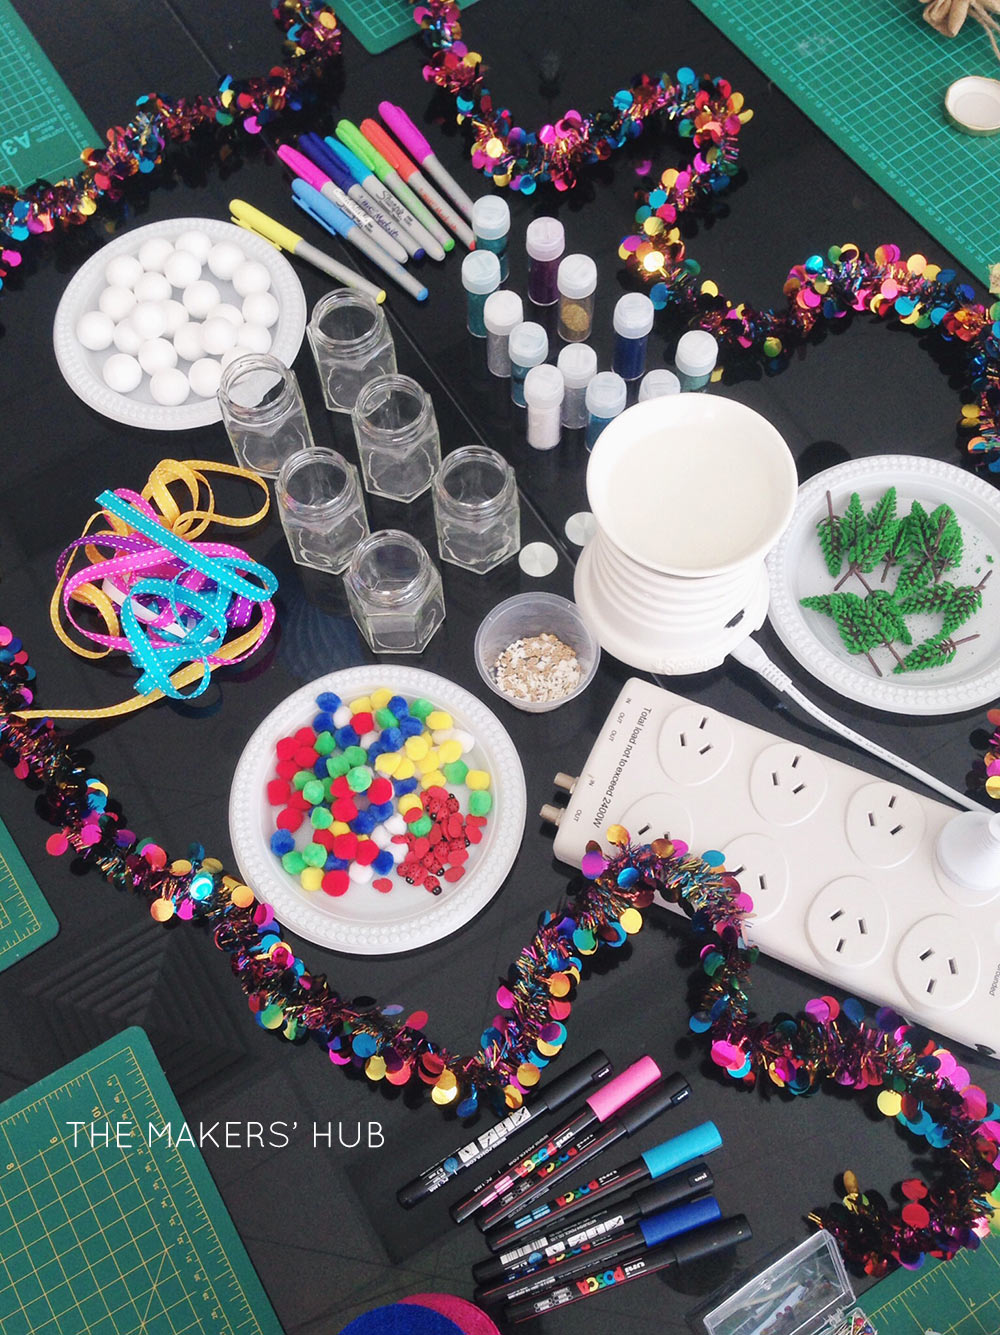 Creative supplies at The Makers Hub